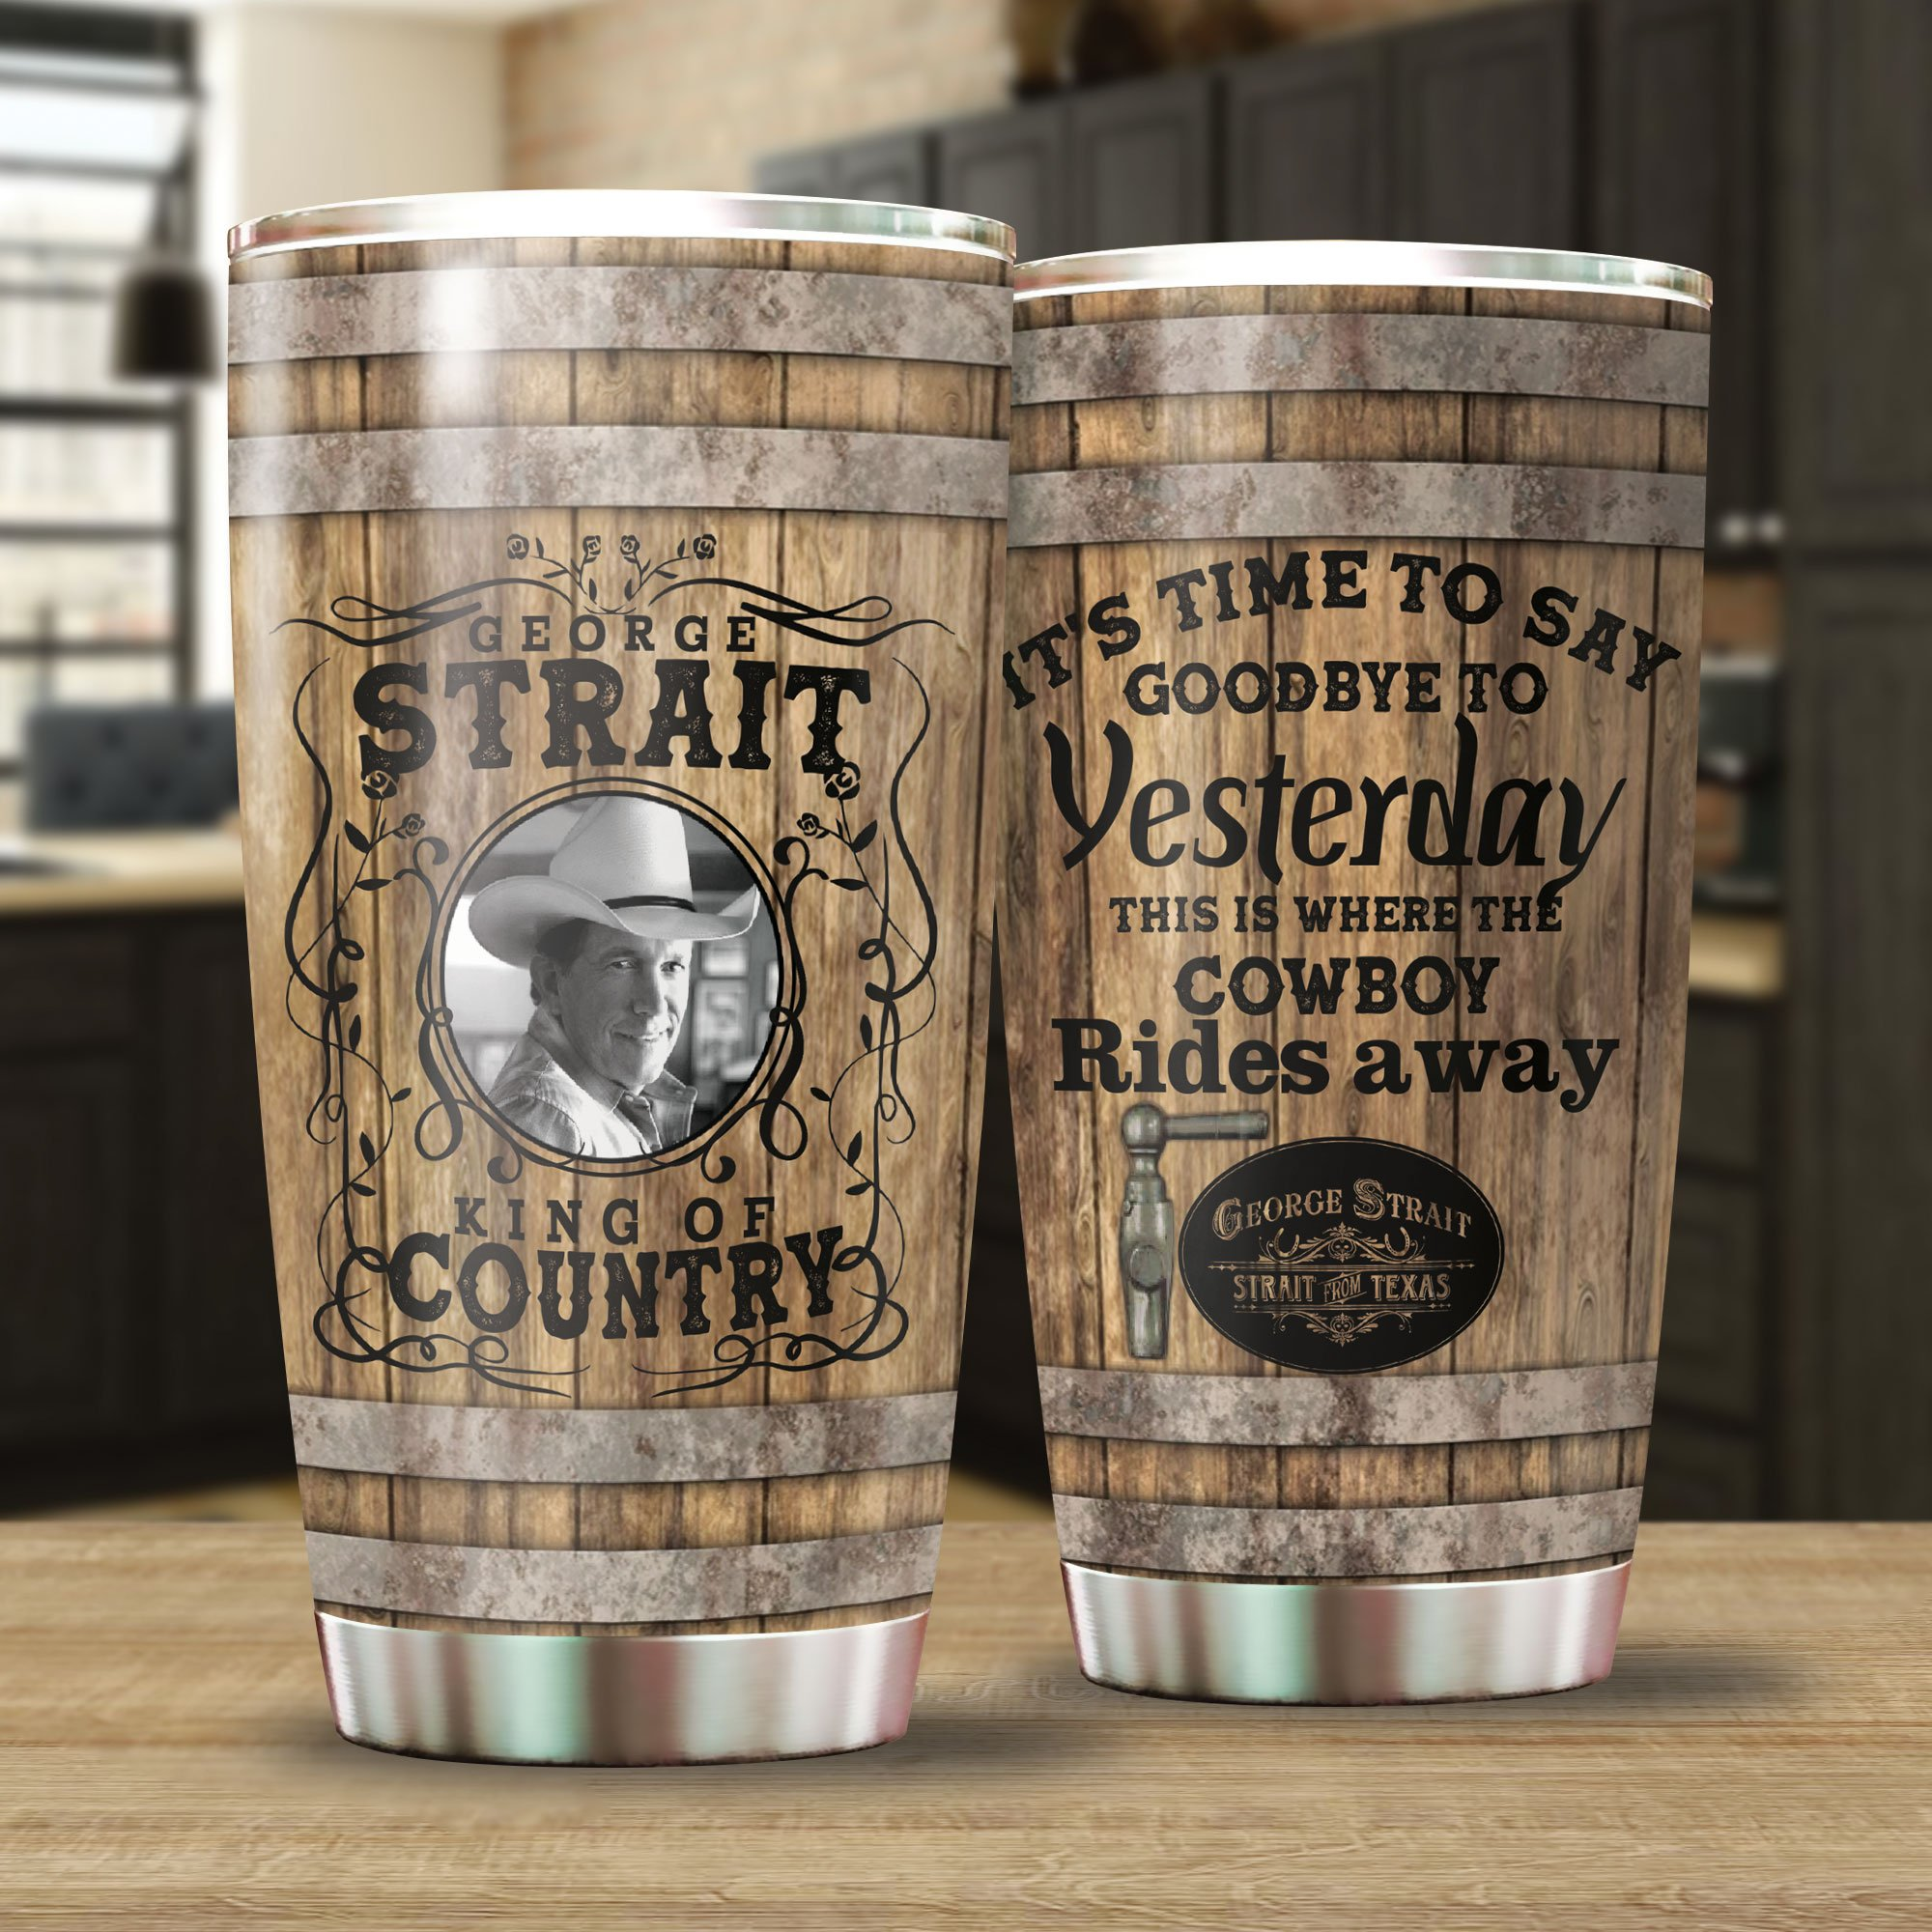 George Strait Stainless Steel Tumbler Cup